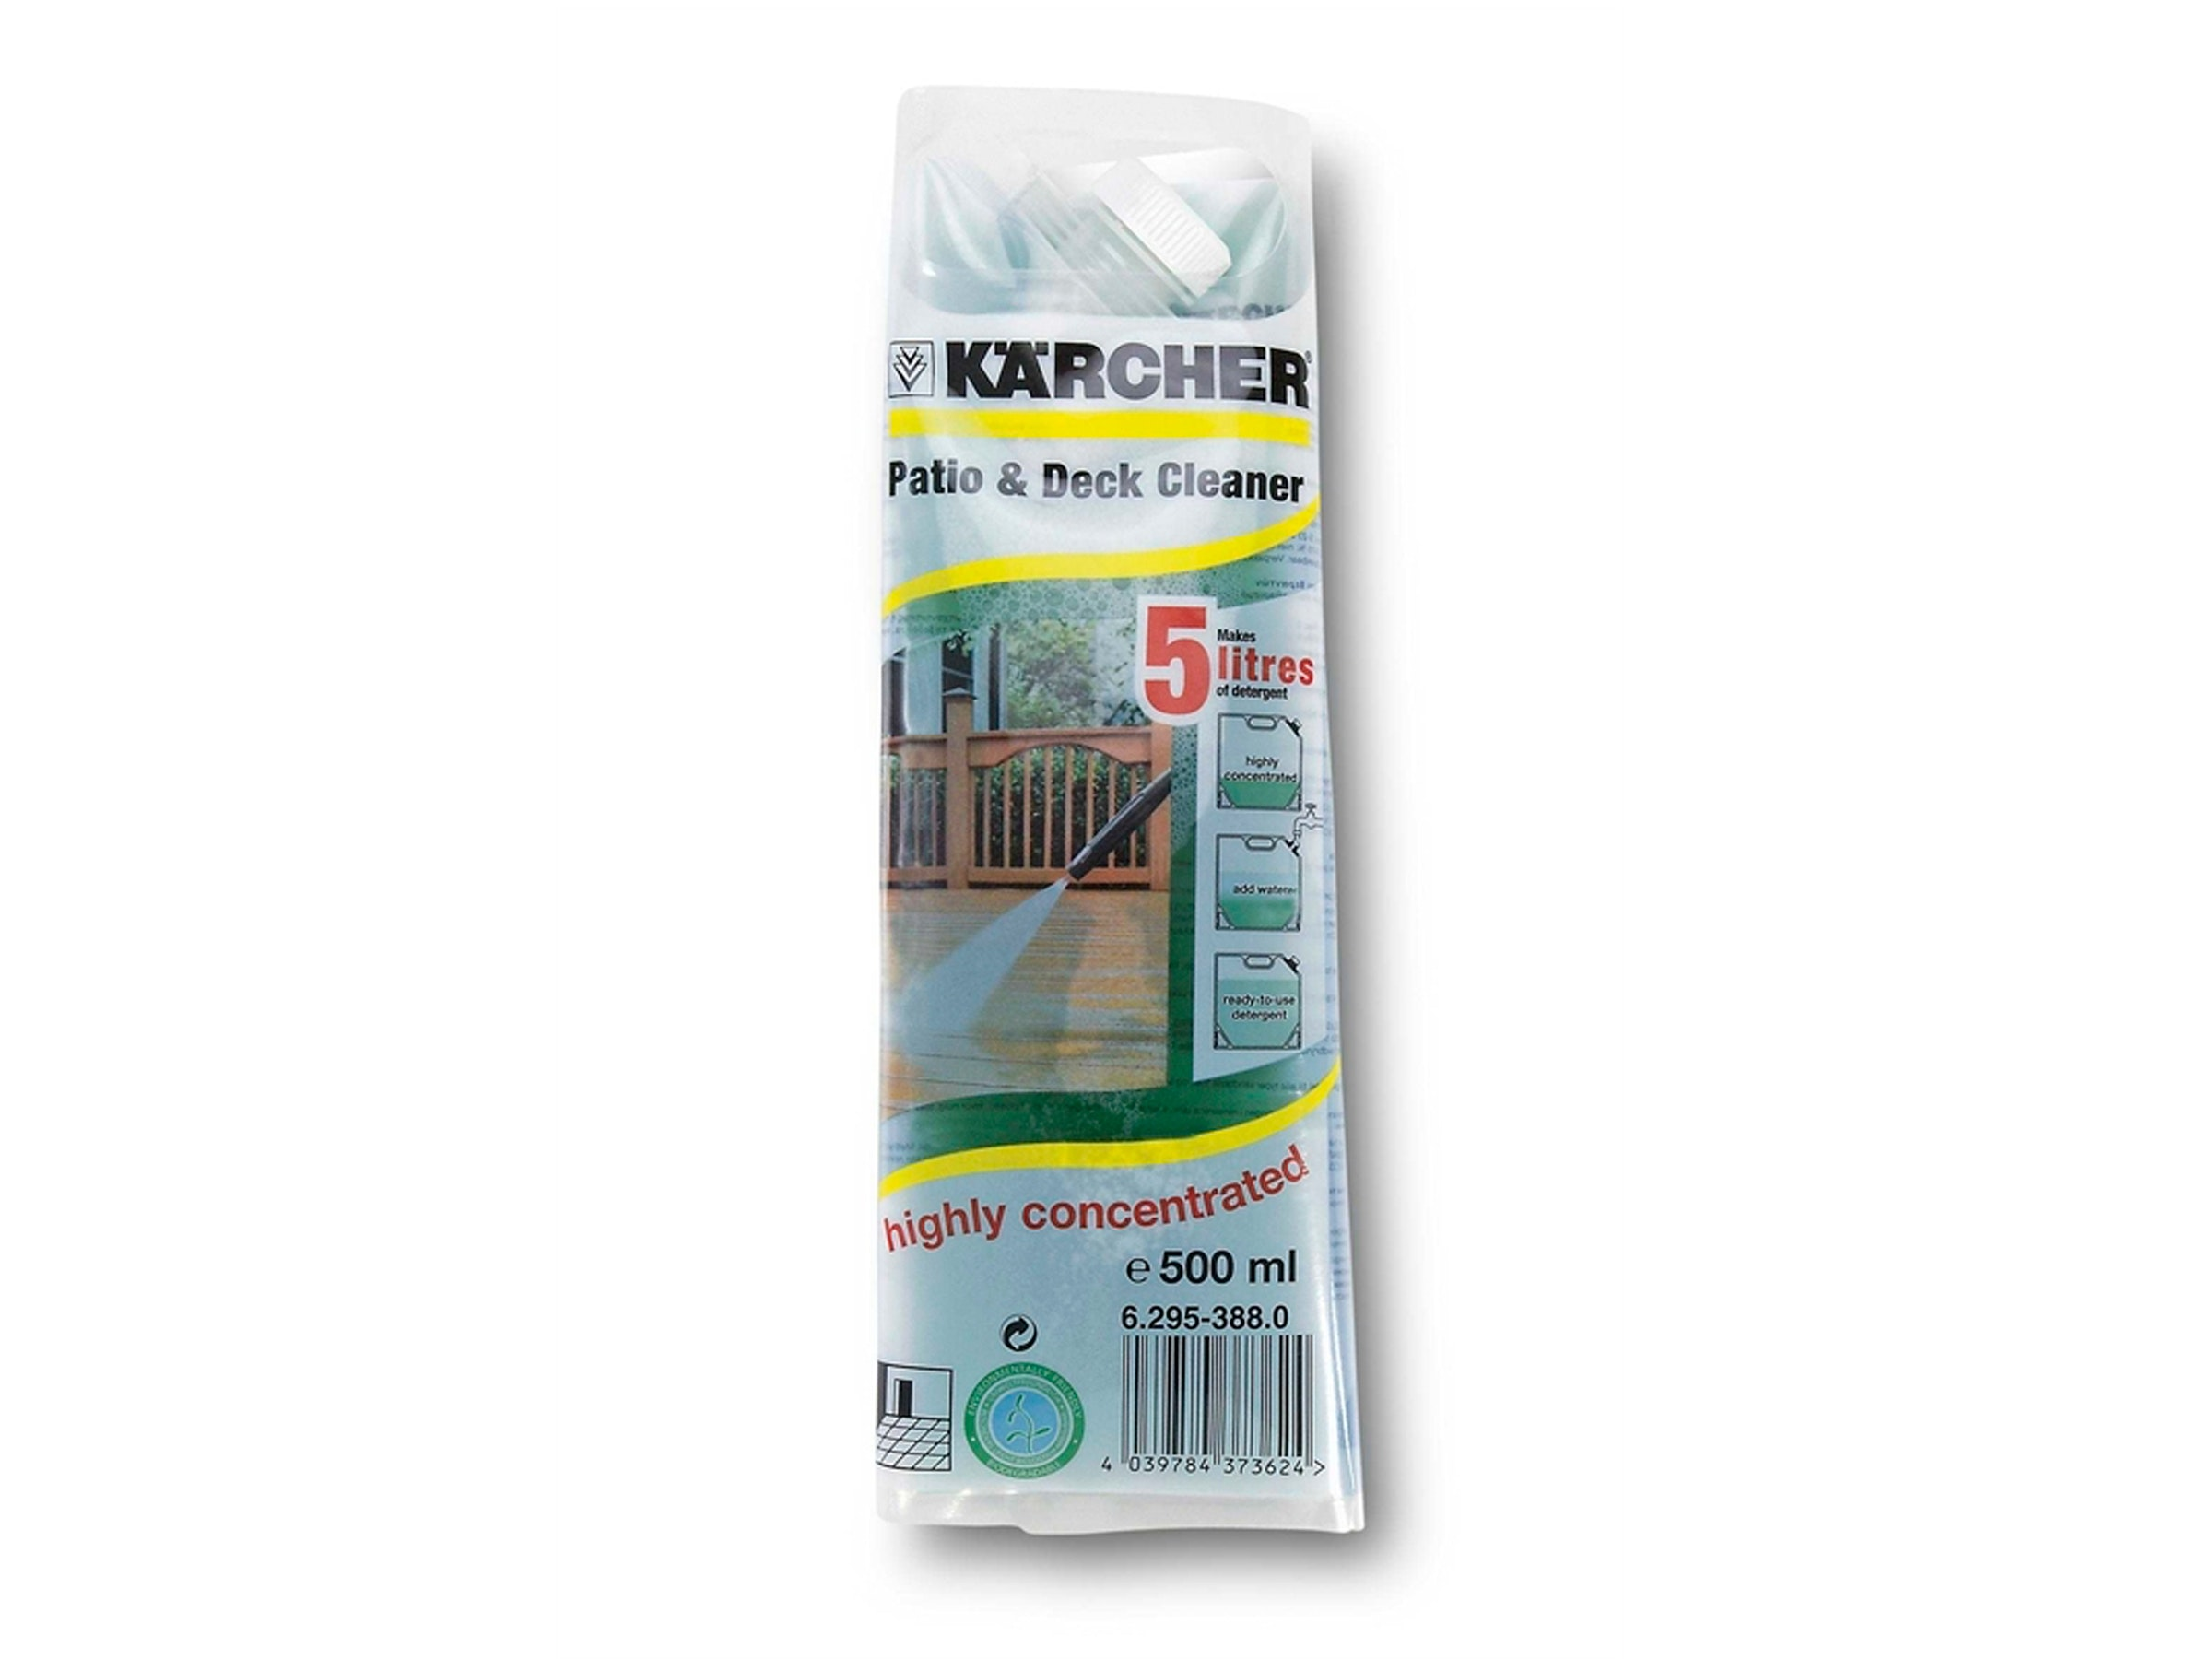 Karcher Patio & Deck Pouch 500ml